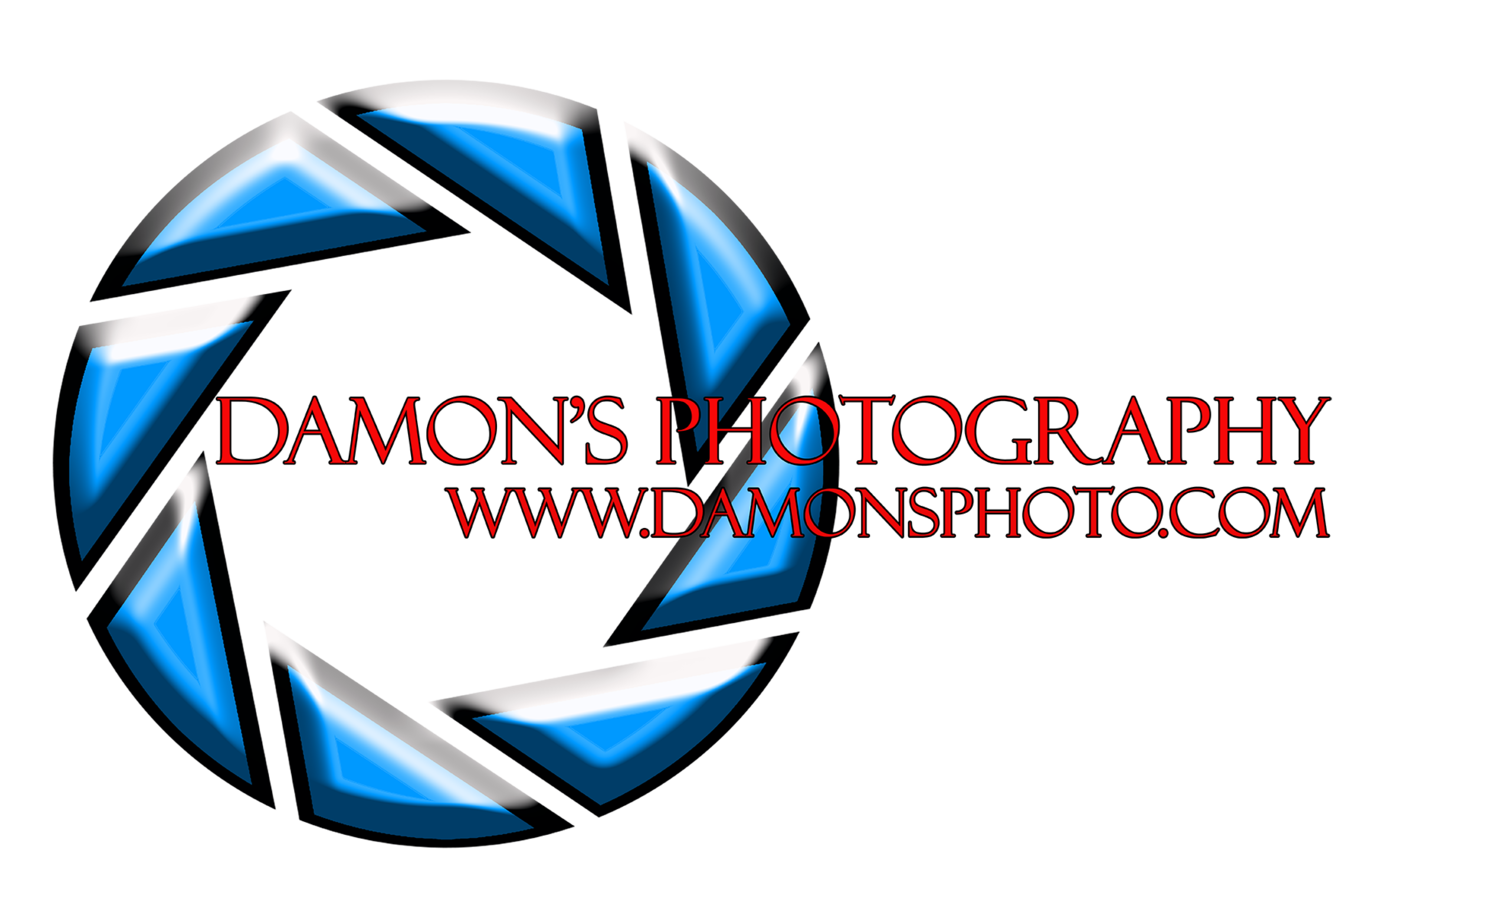 Damon's Photography